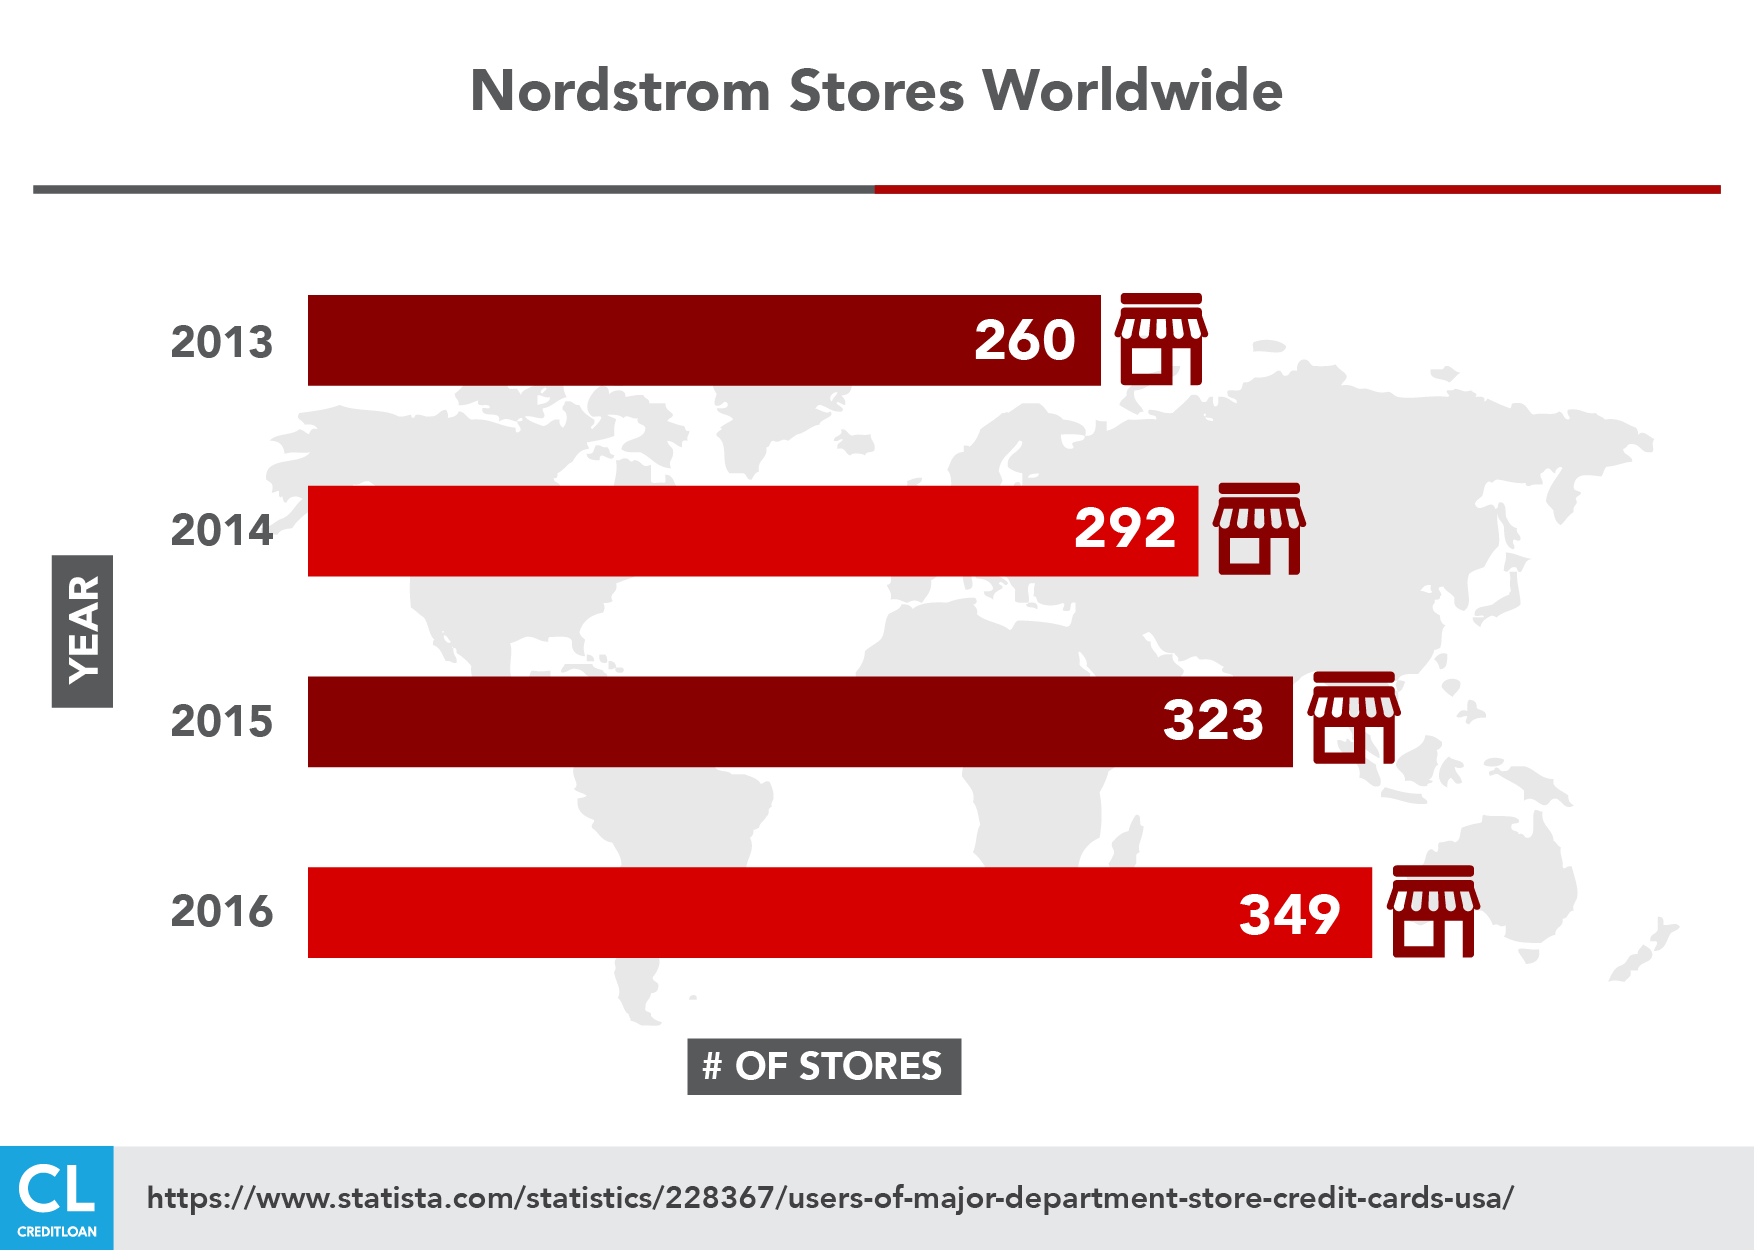 Nordstrom Stores Worldwide from 2013-2016